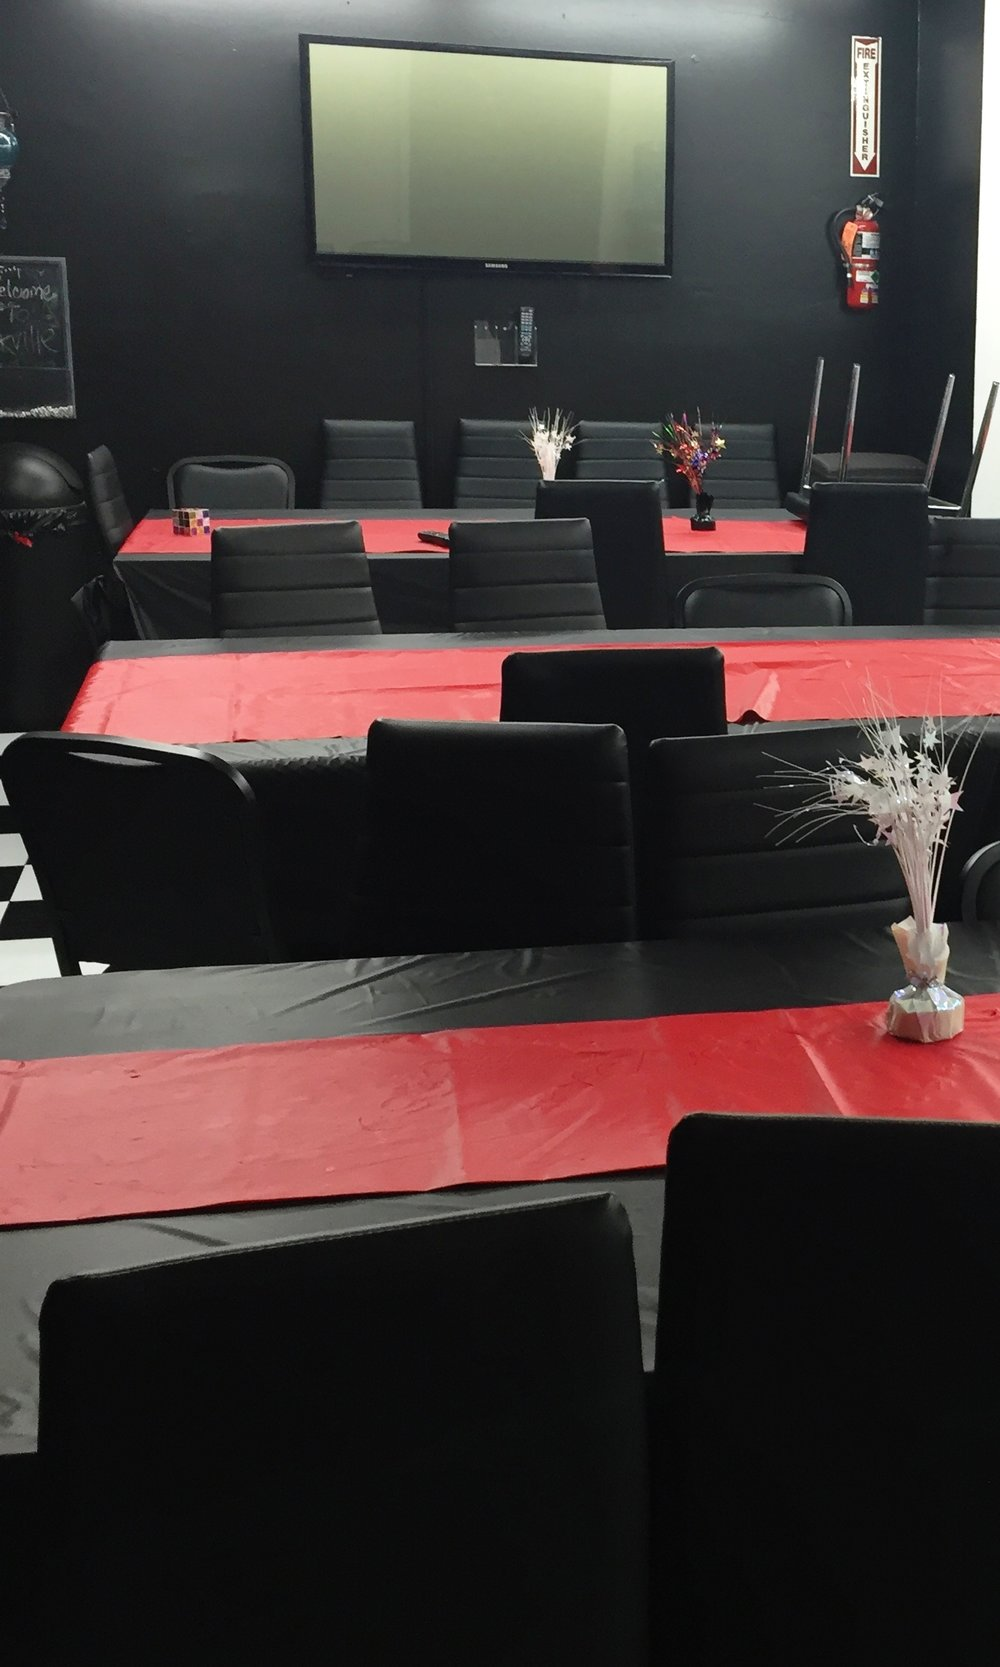 Party Room Rental - The Rockville Escape Room offers a multi-functional party room, with seating for 40. The cost for the room is $75* an hour and it includes tableware and cleaning.Ask about group discounts for large events!*Full deposit required for reservations.